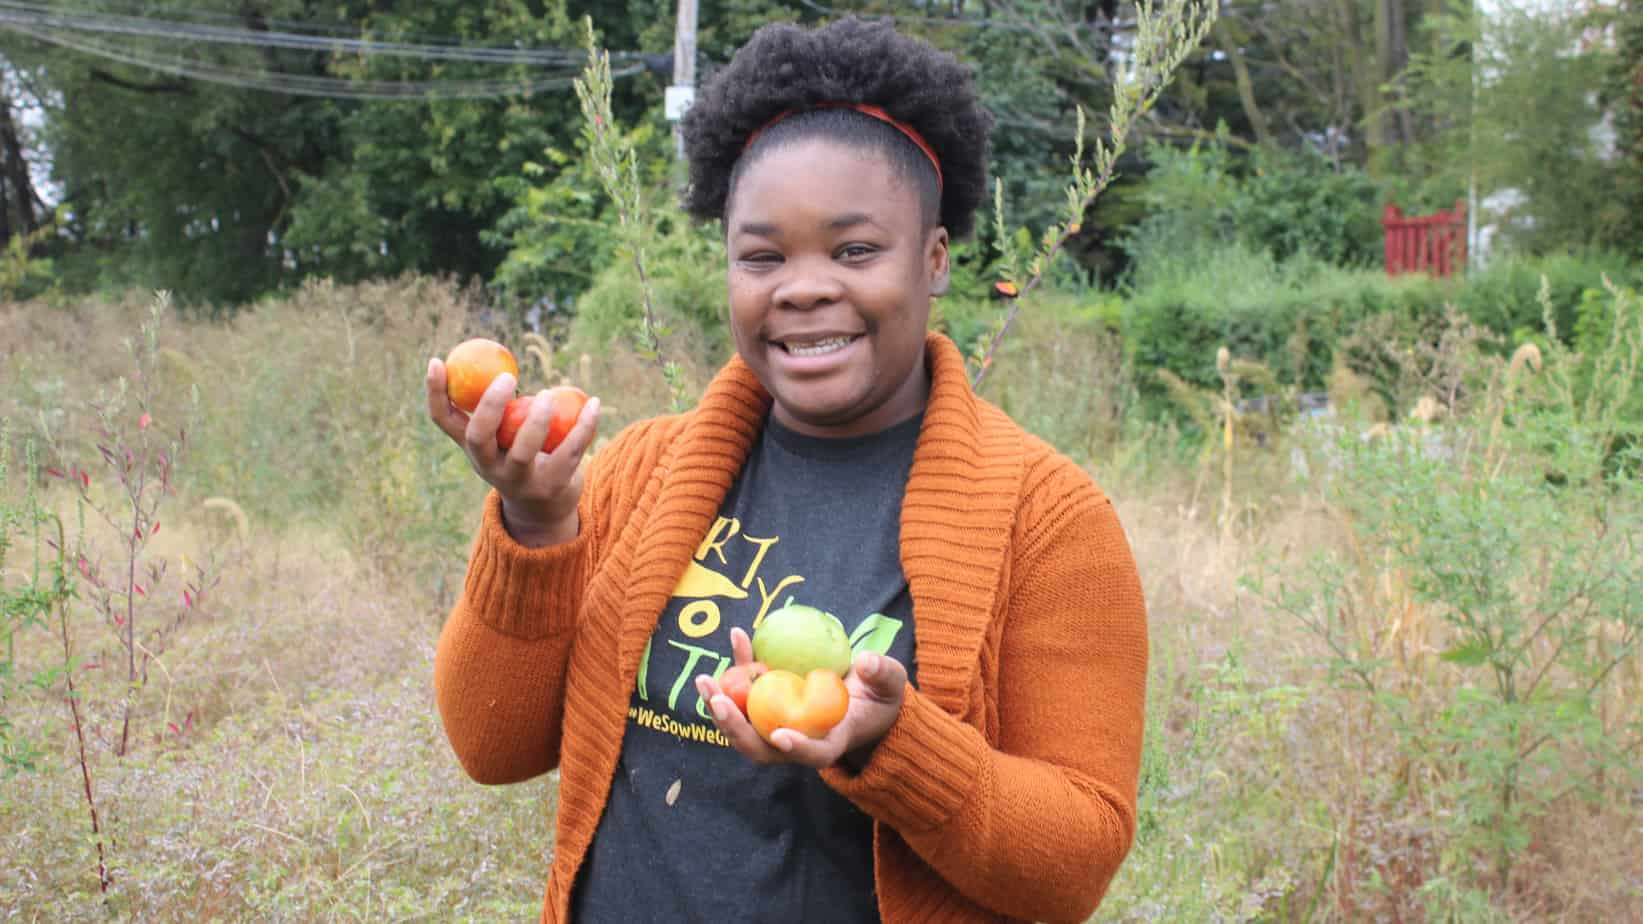 Natasha Nicholes is one of the two managers of the We Sow We Grow Project. A Community based gardening program that seeks to help Chicagoans and their state neighbors grow their own food confidently.